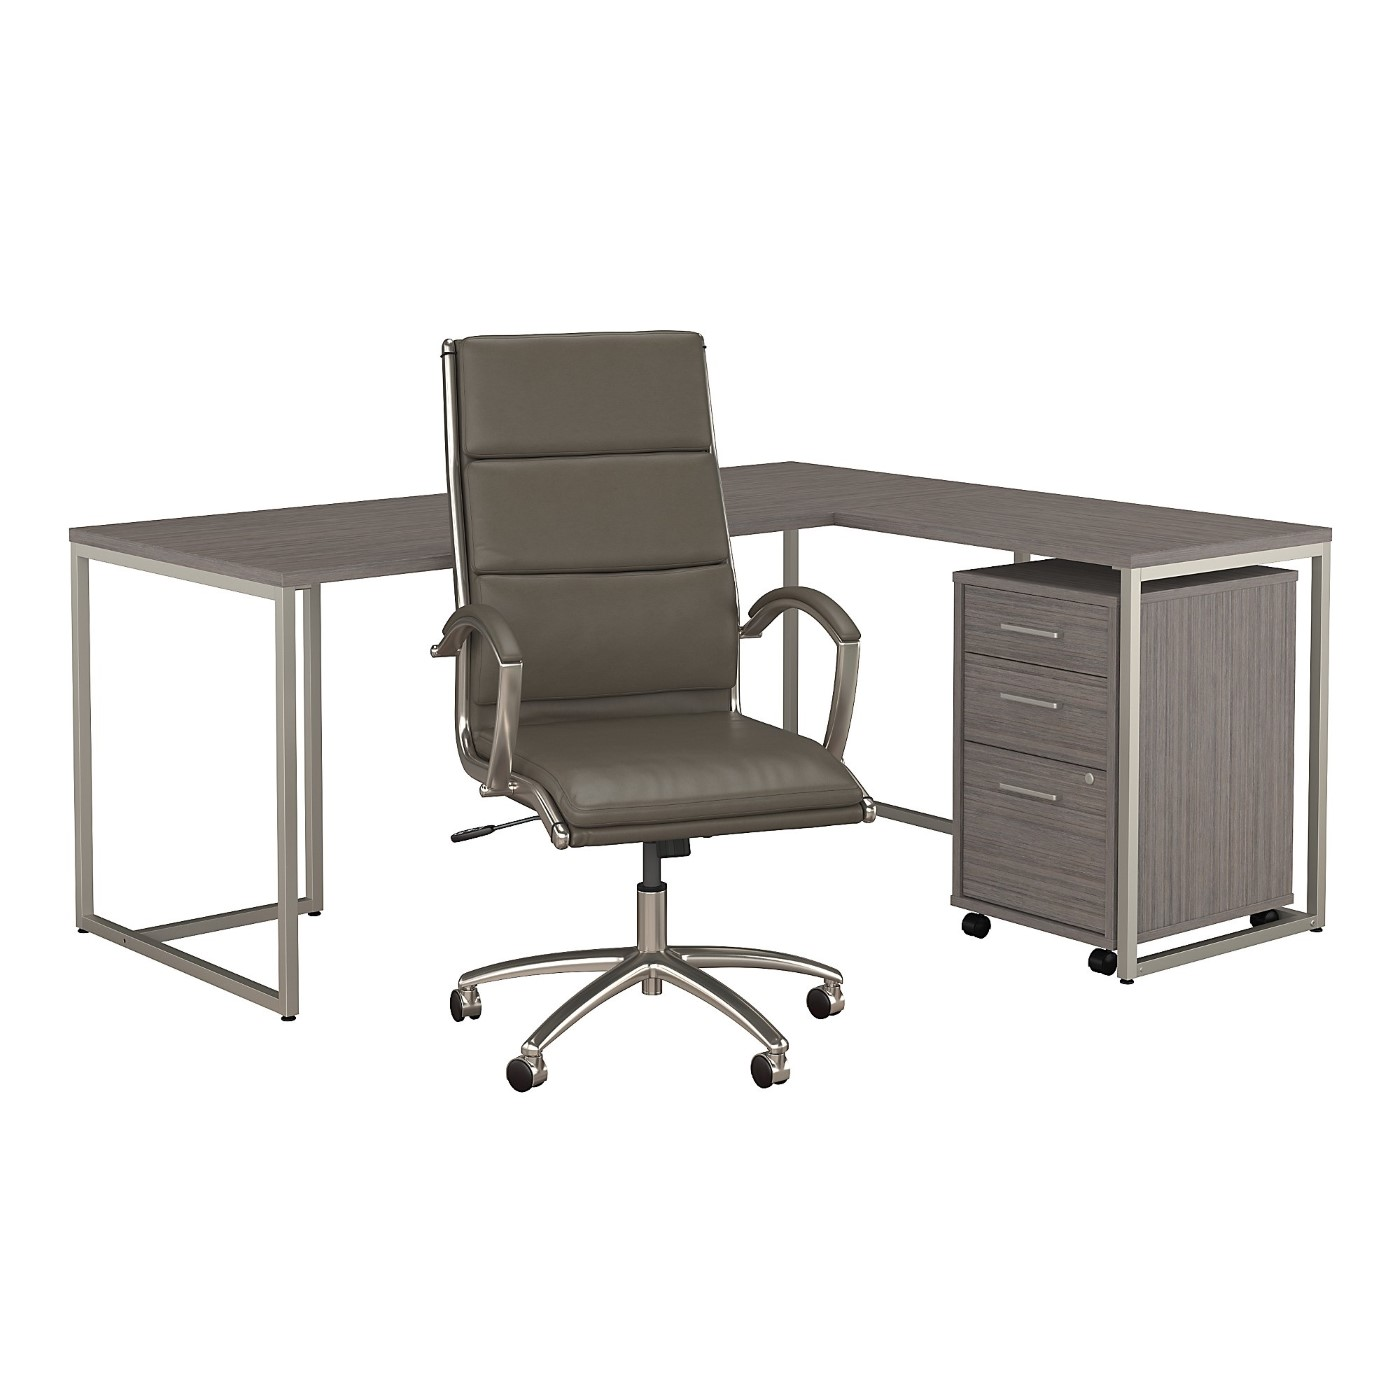 OFFICE BY KATHY IRELAND® METHOD 72W L SHAPED DESK WITH MOBILE FILE CABINET AND HIGH BACK OFFICE CHAIR. FREE SHIPPING SALE DEDUCT 10% MORE ENTER '10percent' IN COUPON CODE BOX WHILE CHECKING OUT.